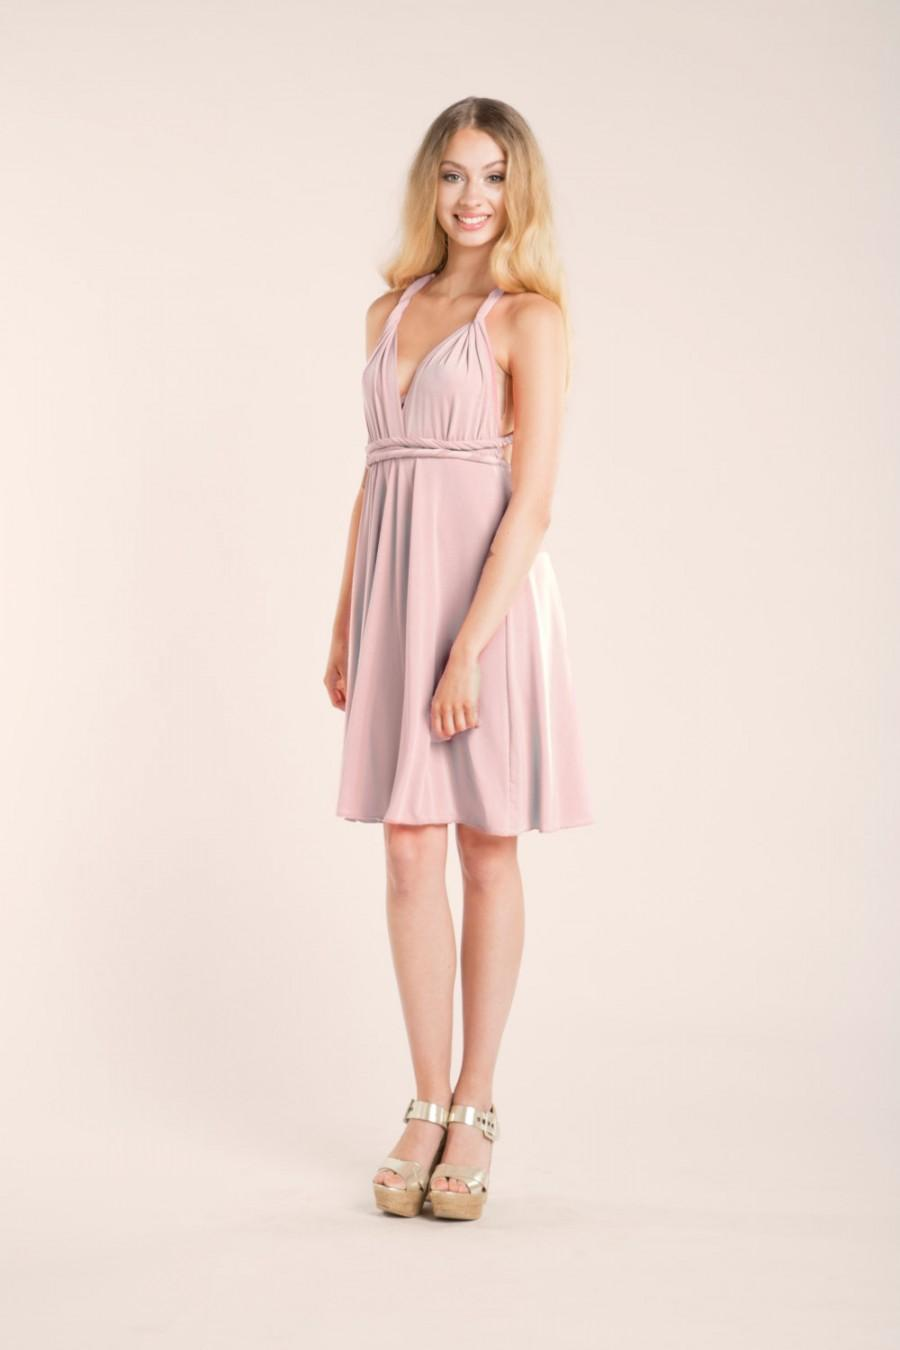 Short Rose Quartz Bridesmaid Dress Short Pink Dress Light Pink ...